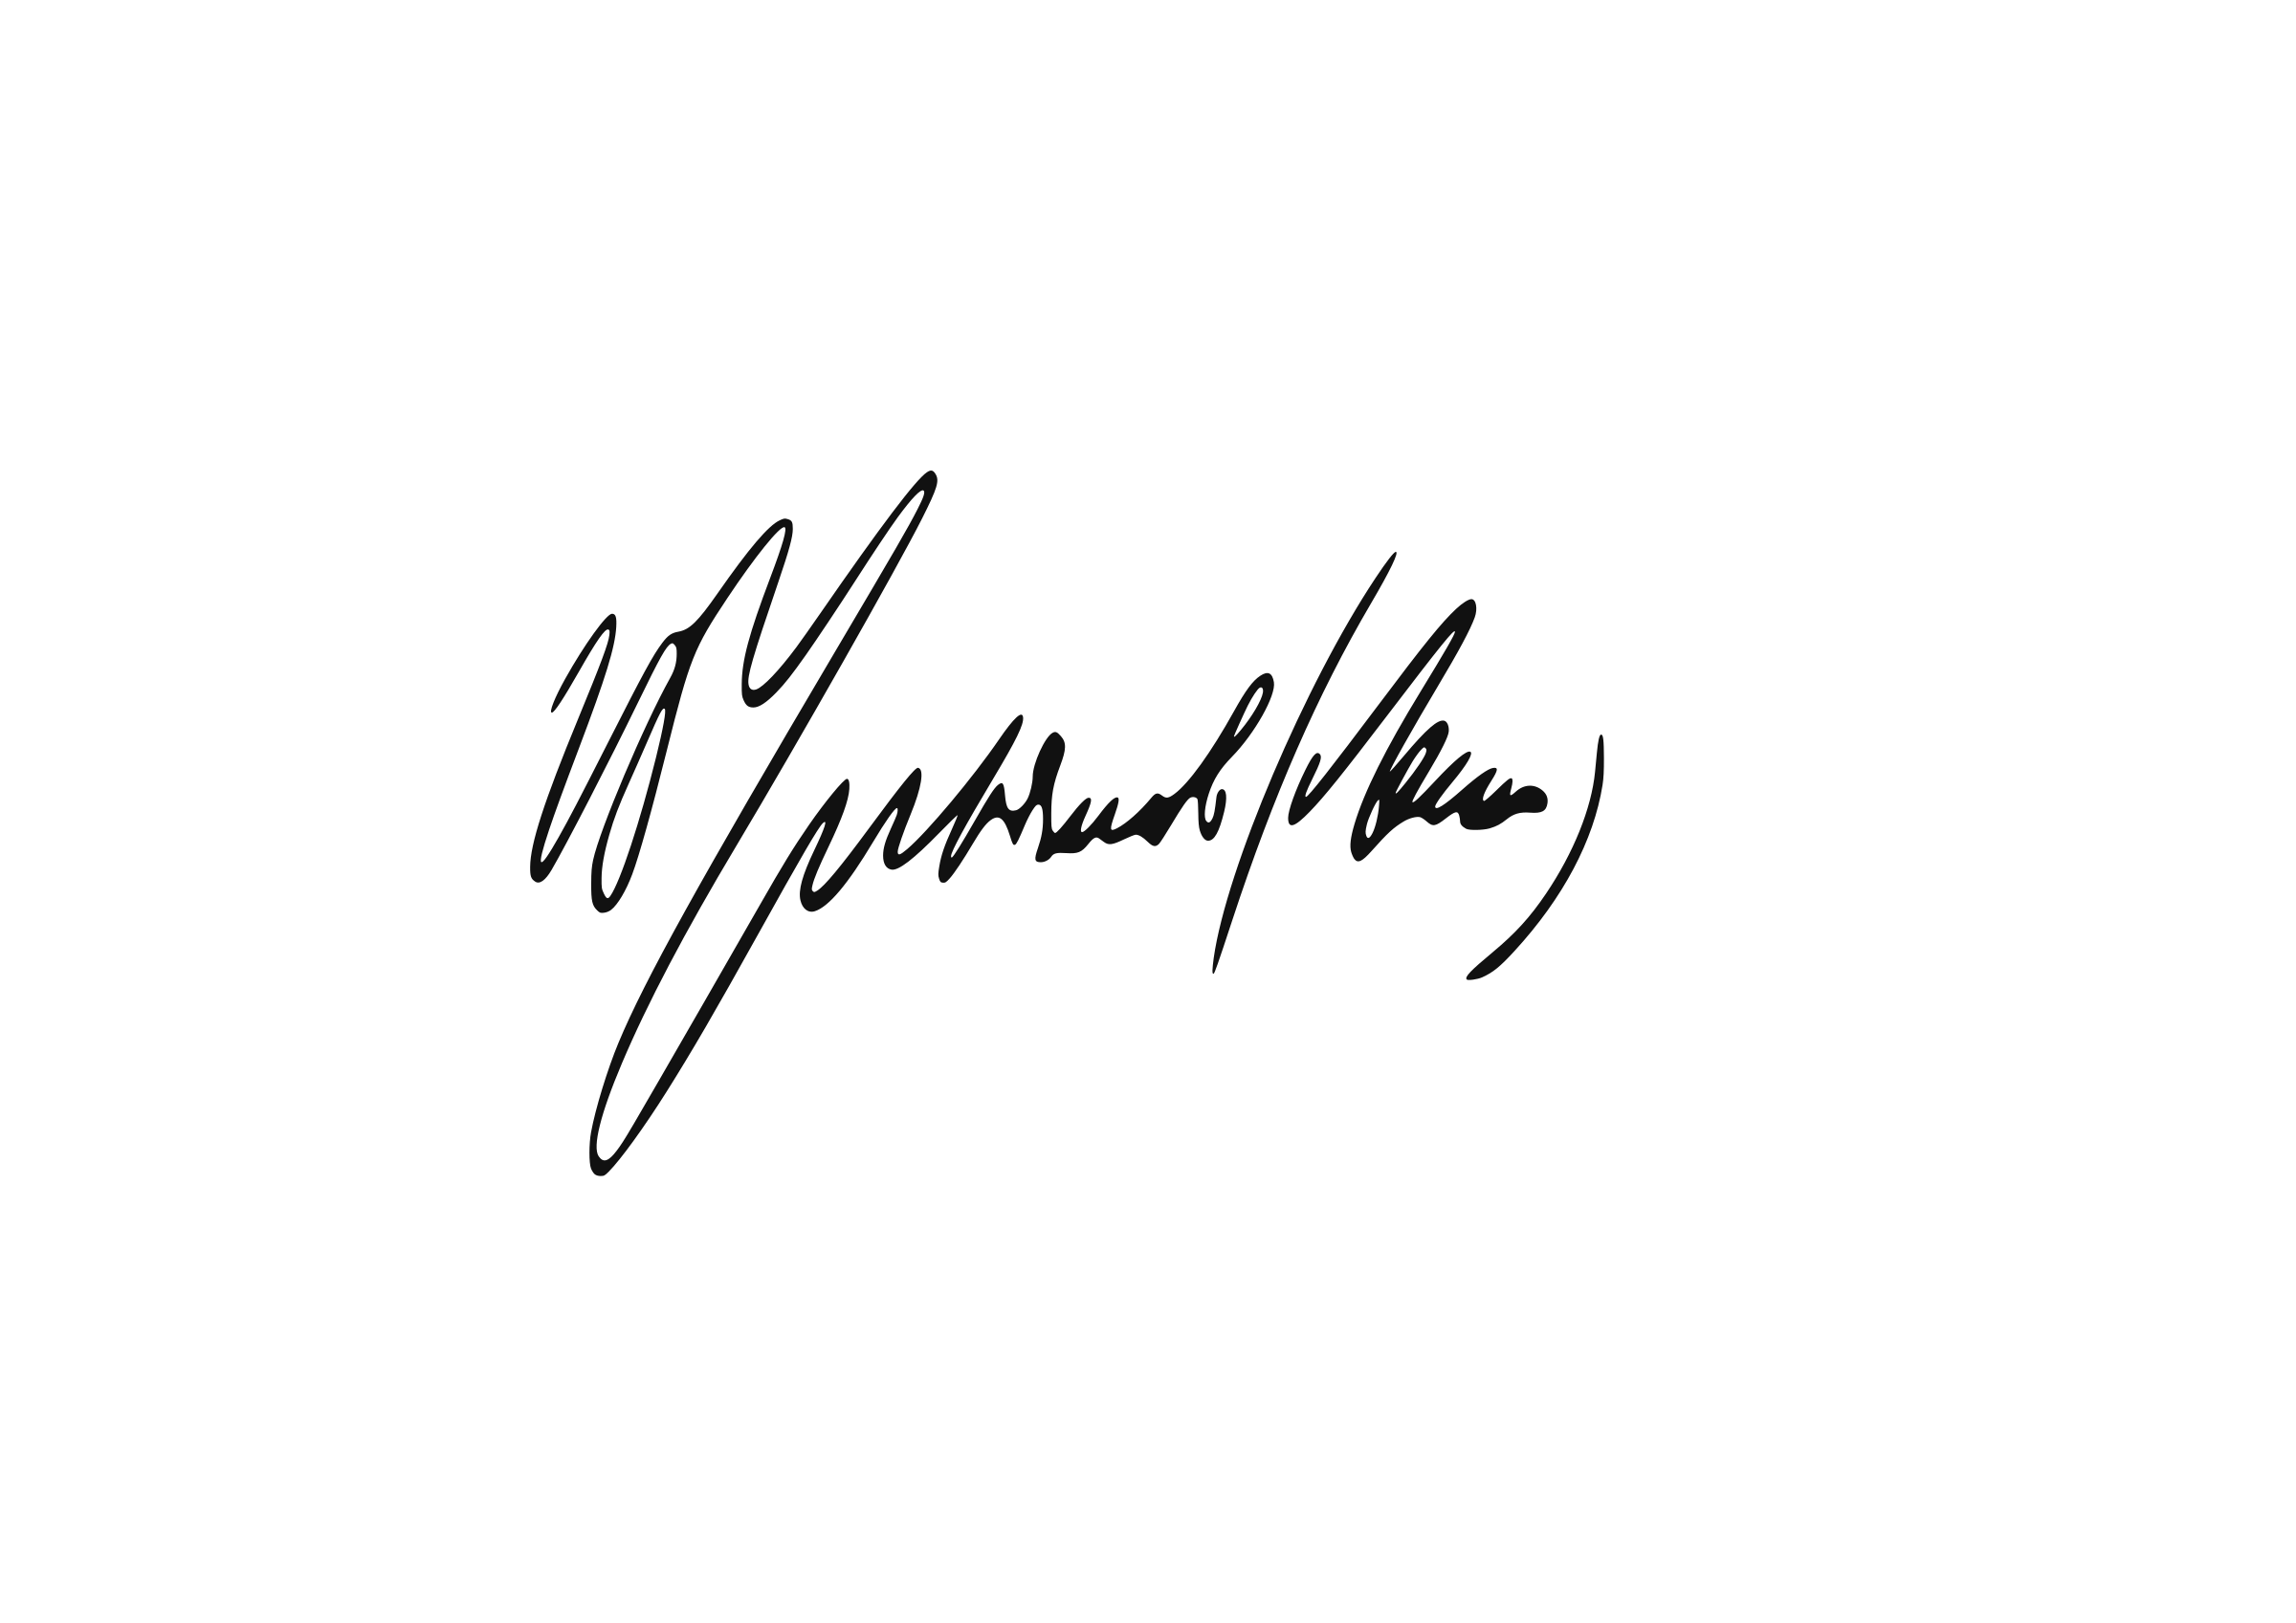 Lenin signature by yyk@mail.ru